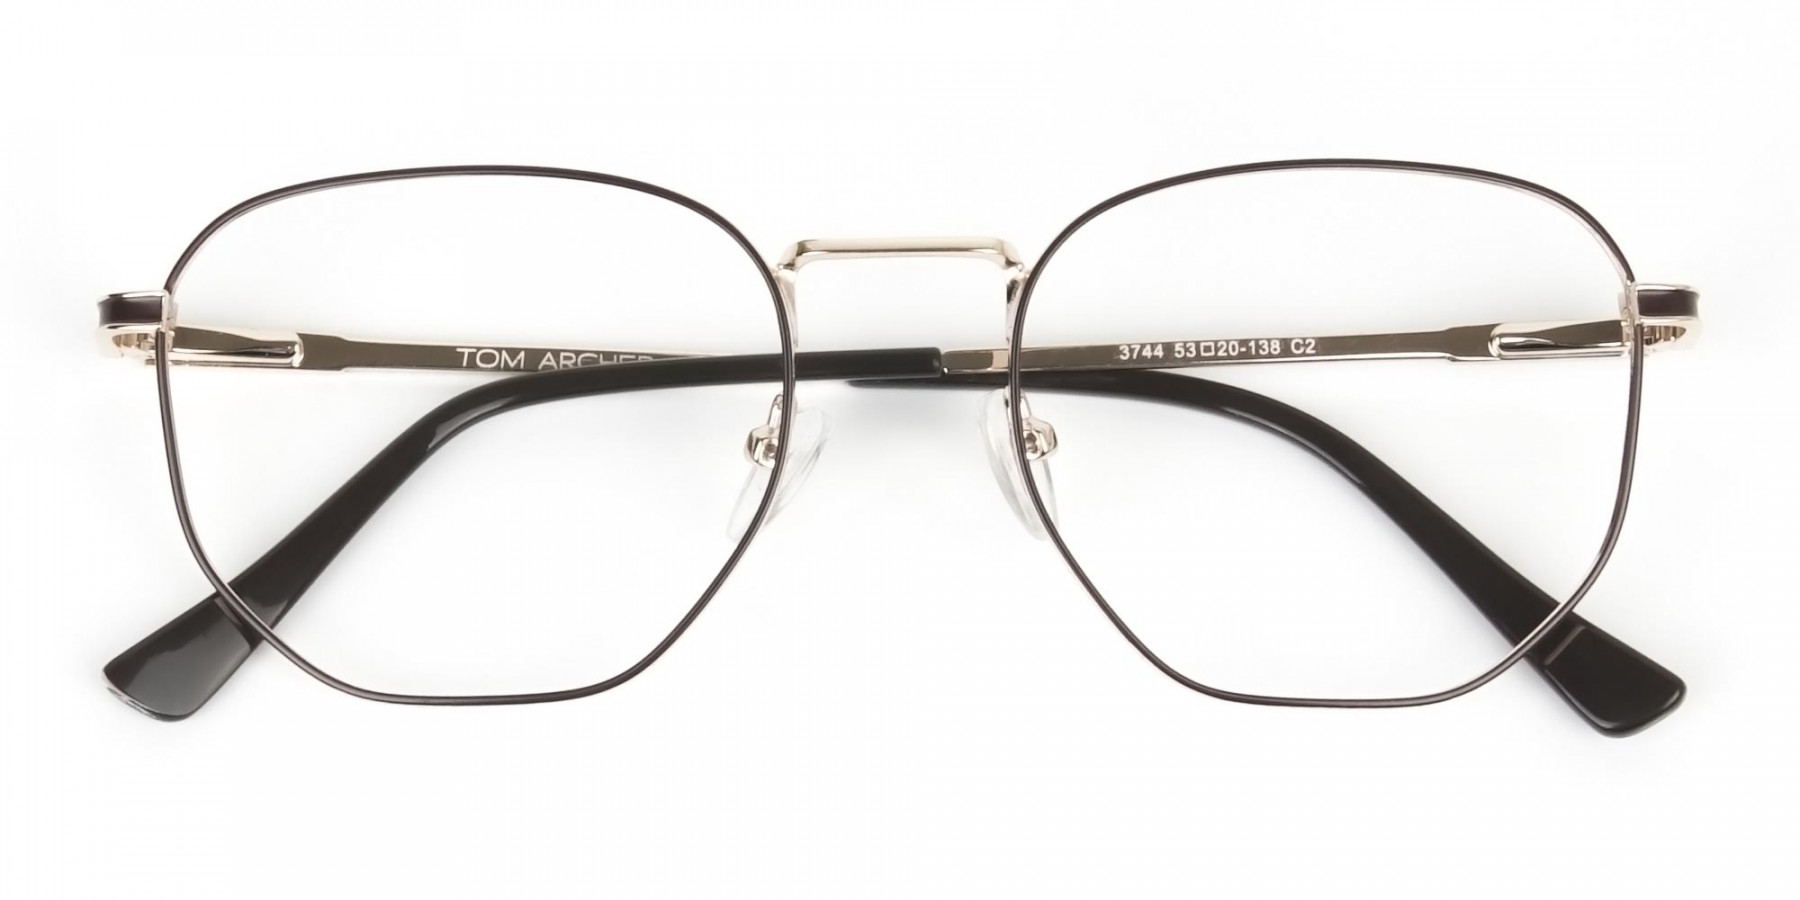 Lightweight Gold and Brown Geometric Glasses - 1